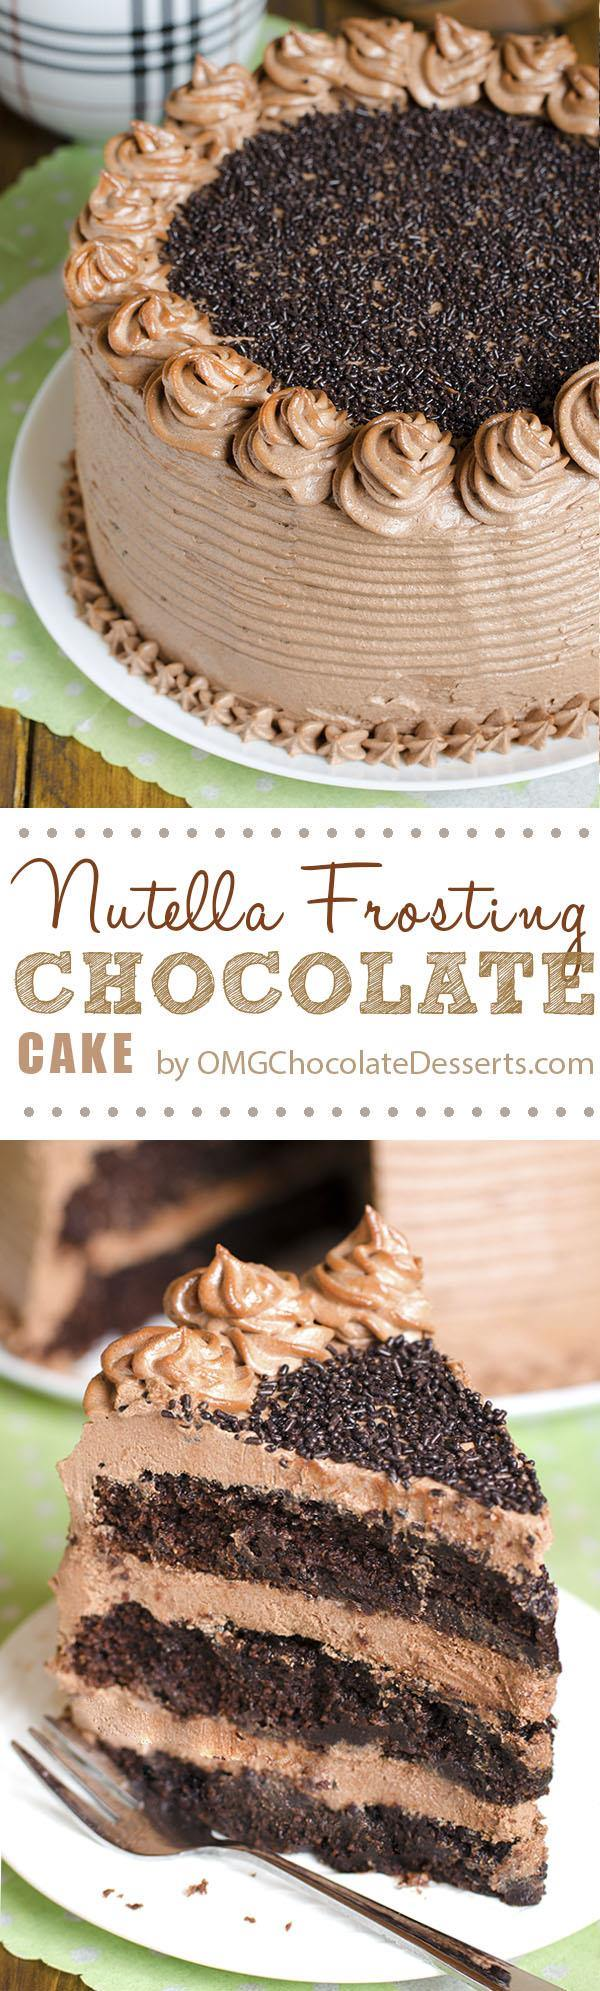 Decadent Nutella Chocolate Cake – moist, rich and super chocolaty cake frosted with rich and buttery Nutella frosting .